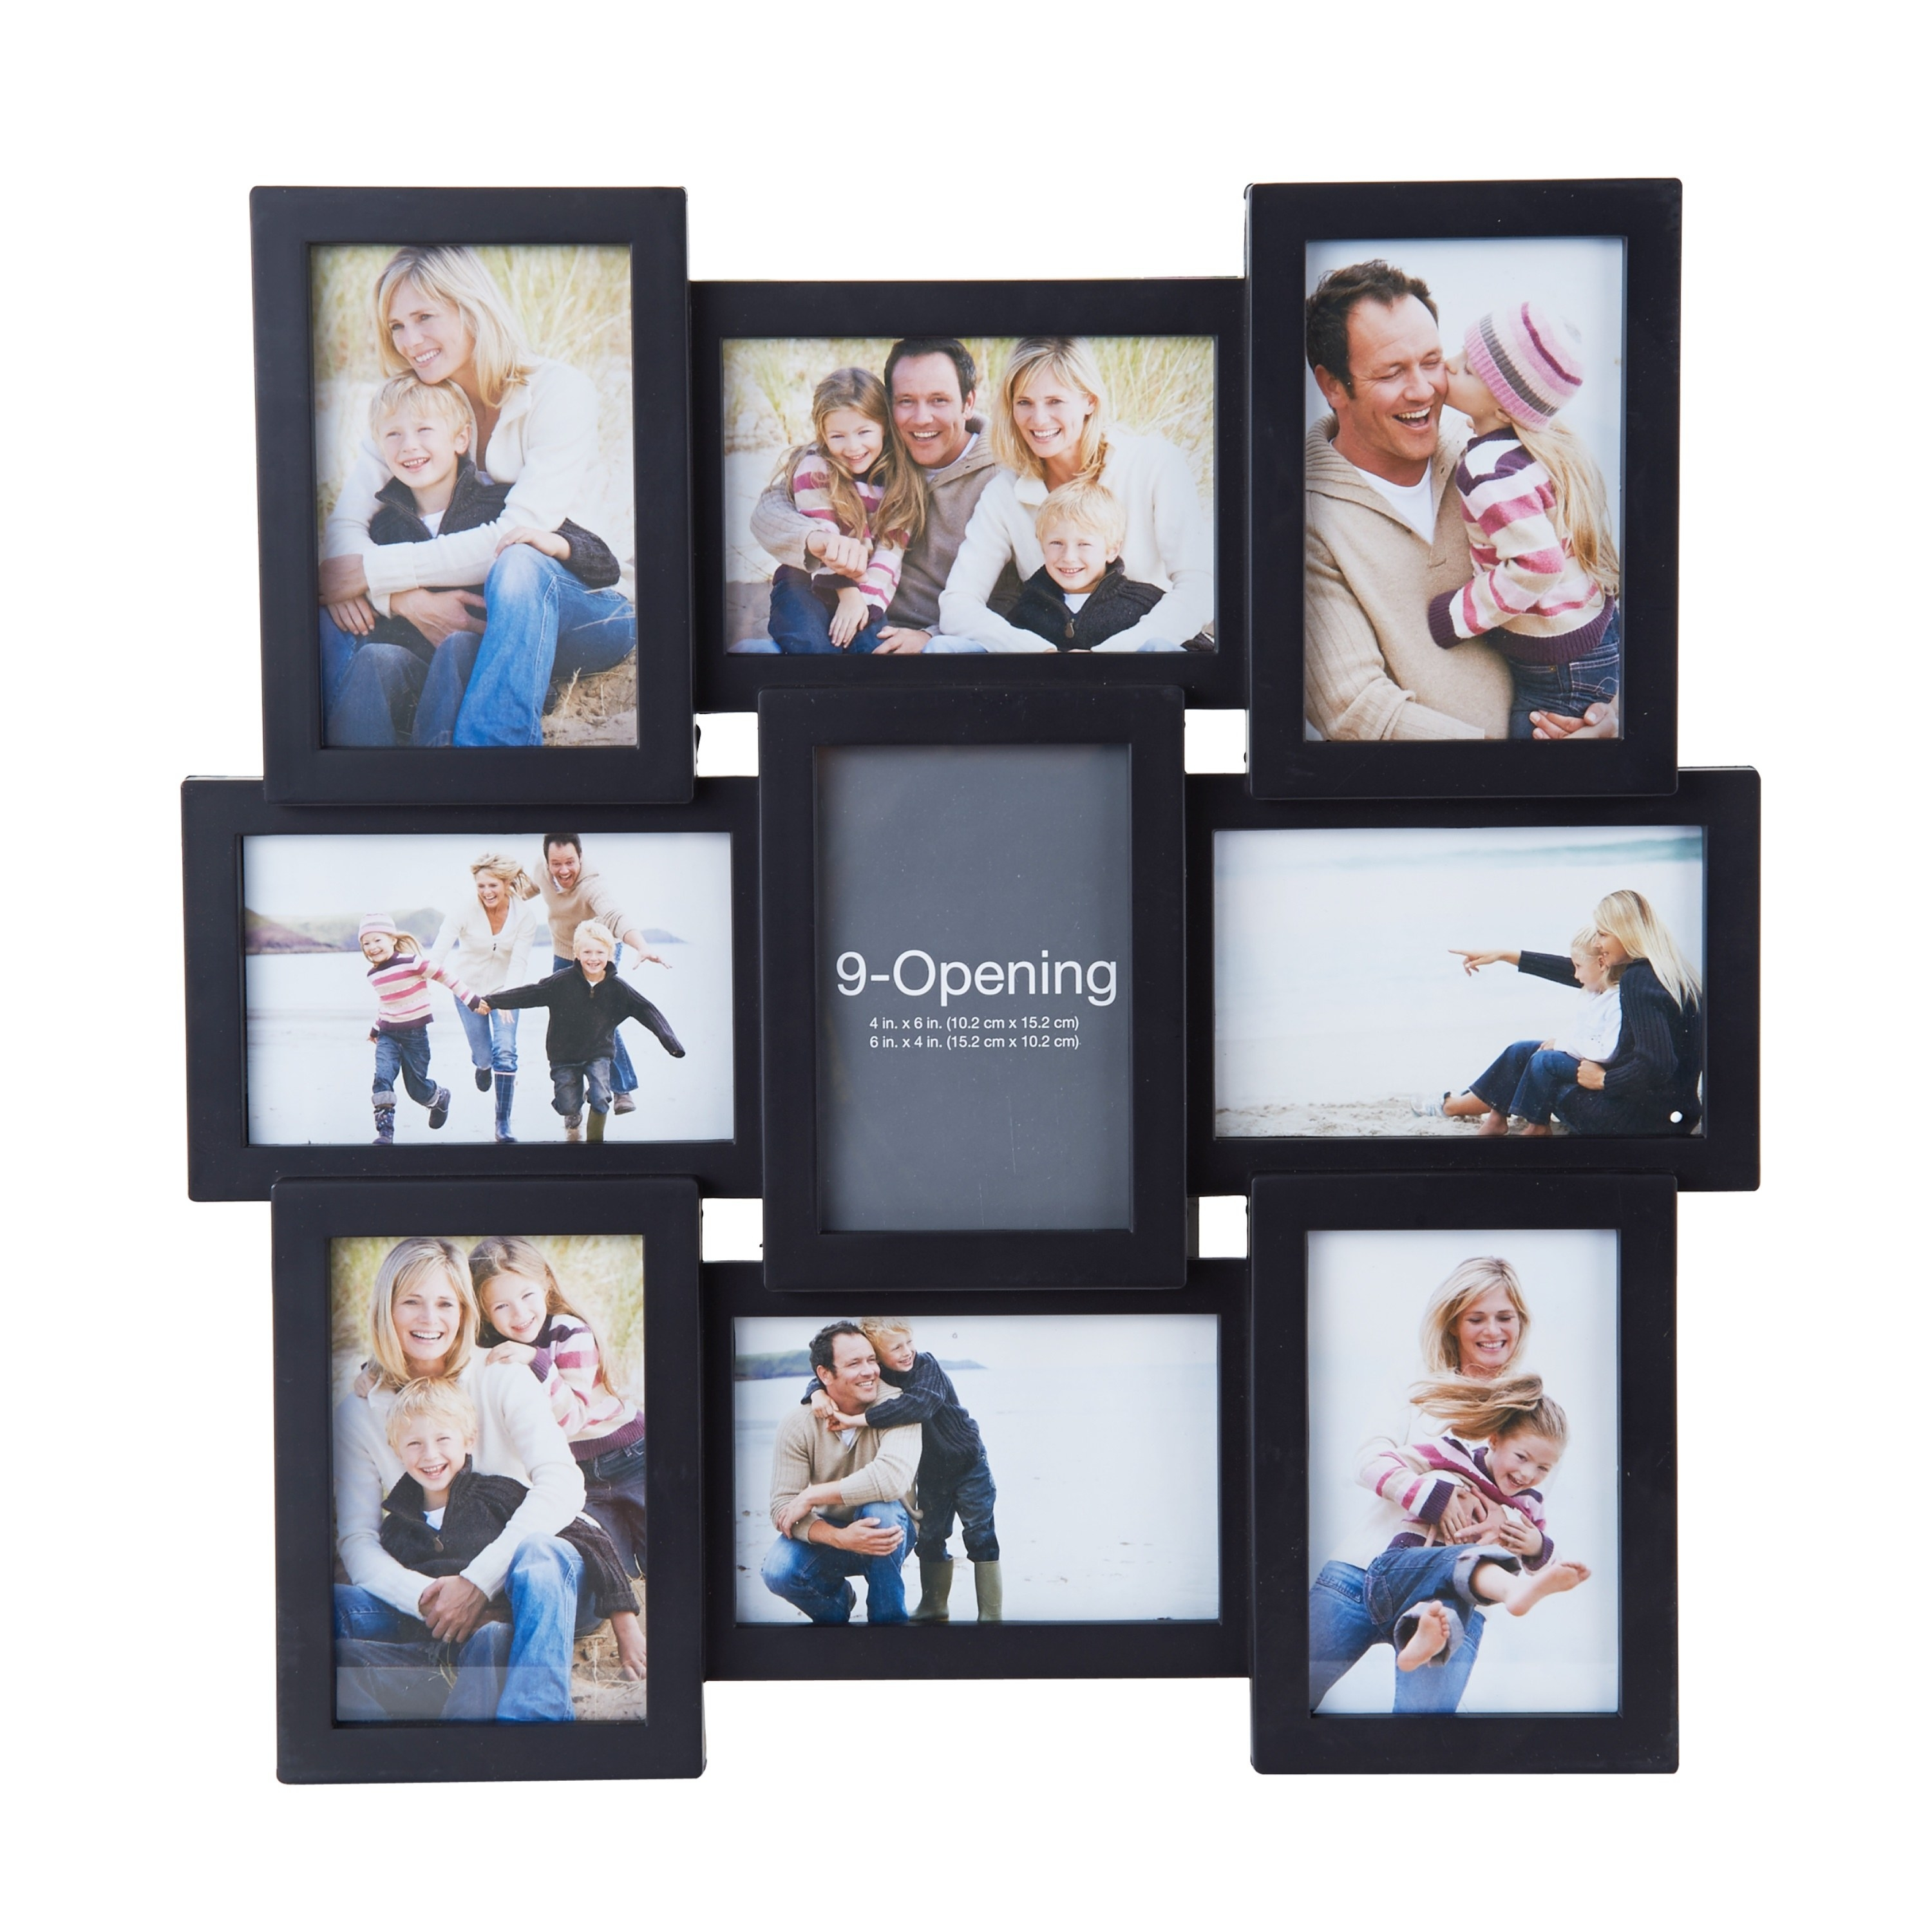 The photo frame with family pictures